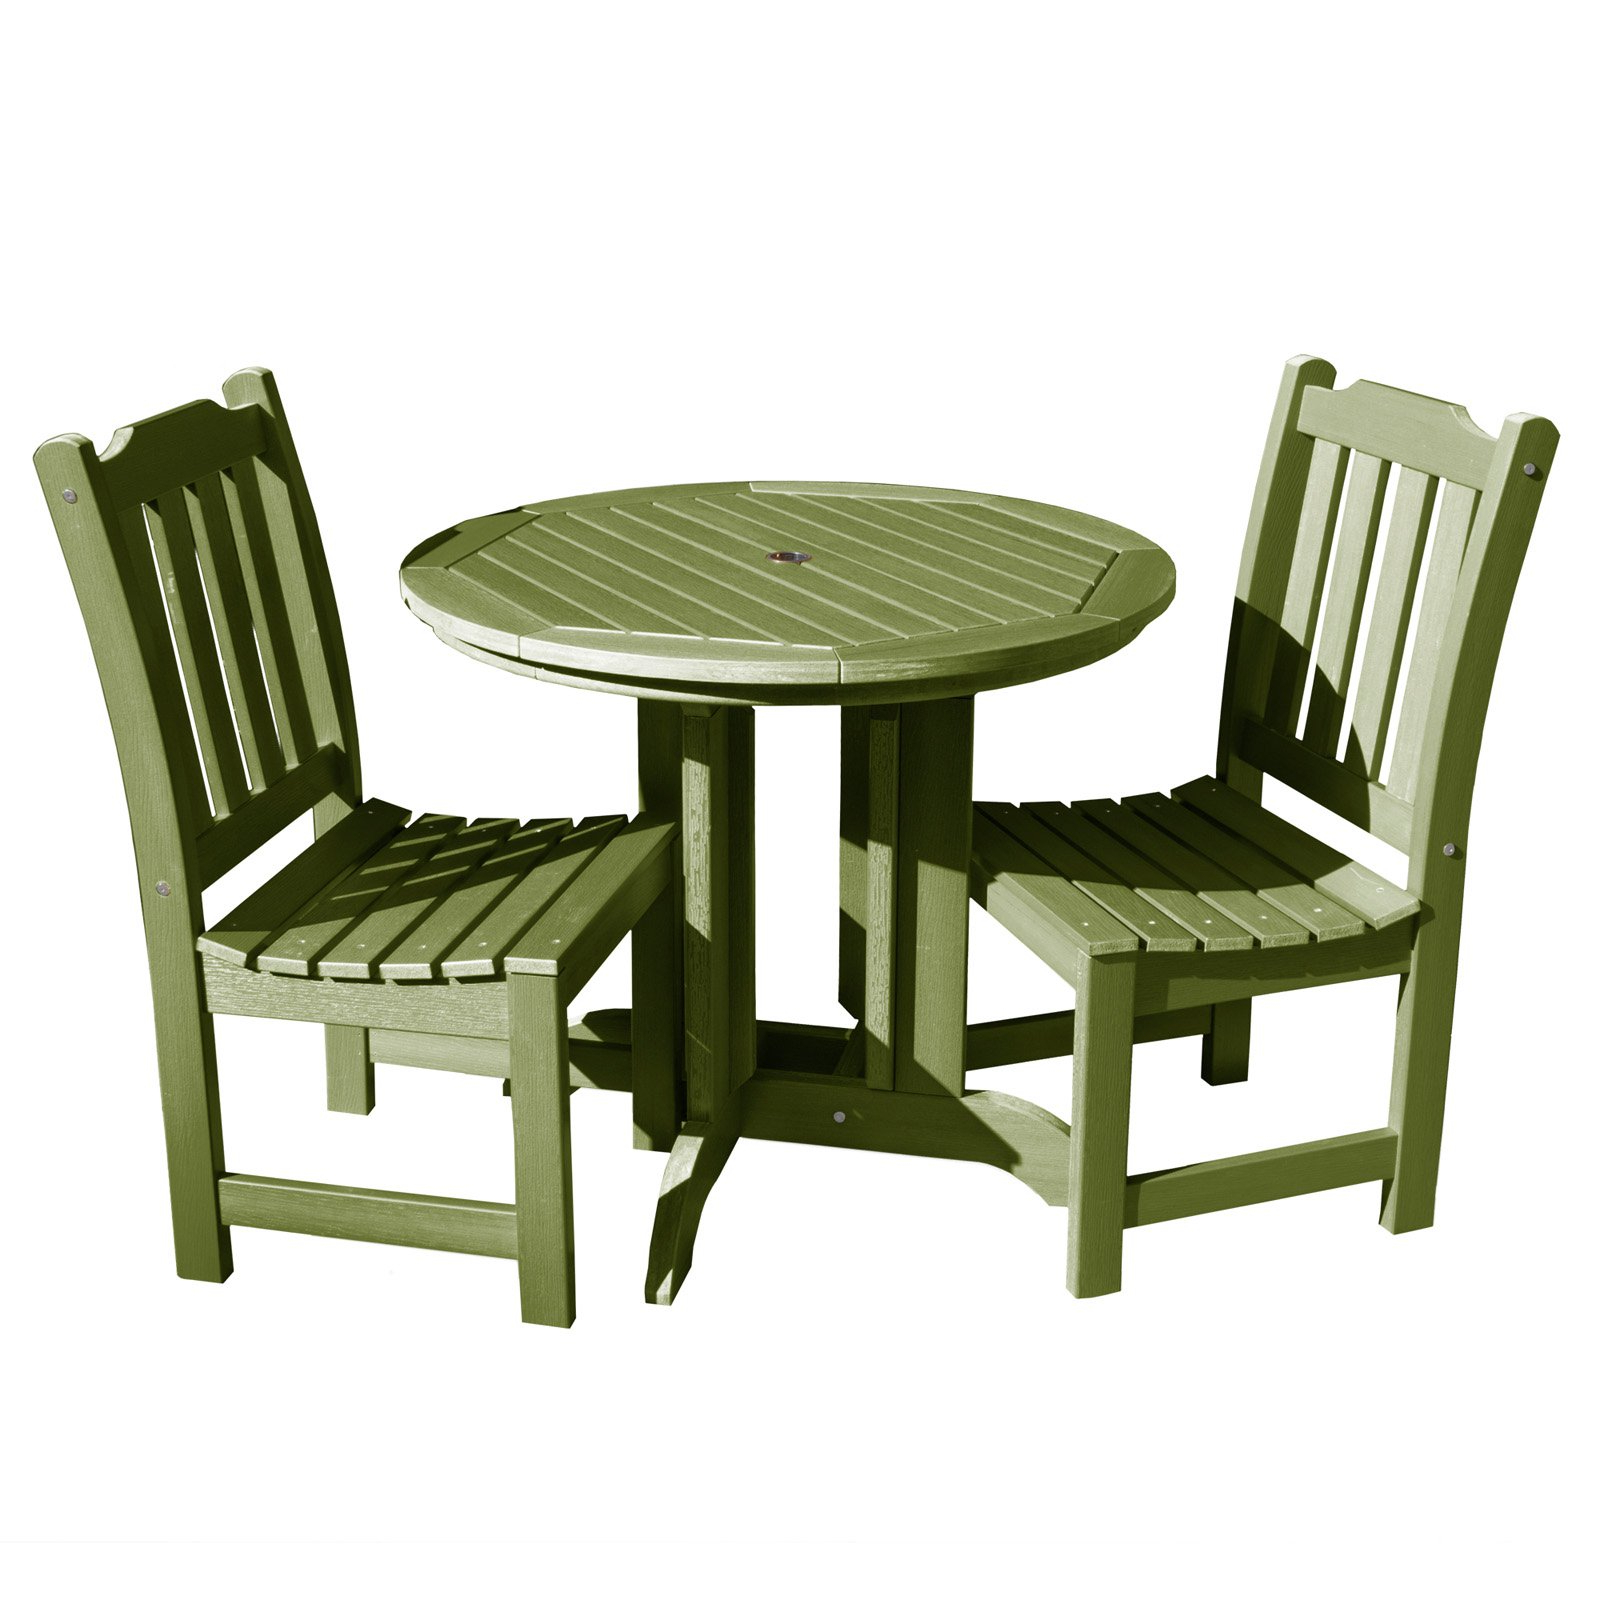 Outdoor Highwood Lehigh Recycled Plastic 3 Piece Round Patio Bistro Inside Famous Saintcroix 3 Piece Dining Sets (Gallery 18 of 20)